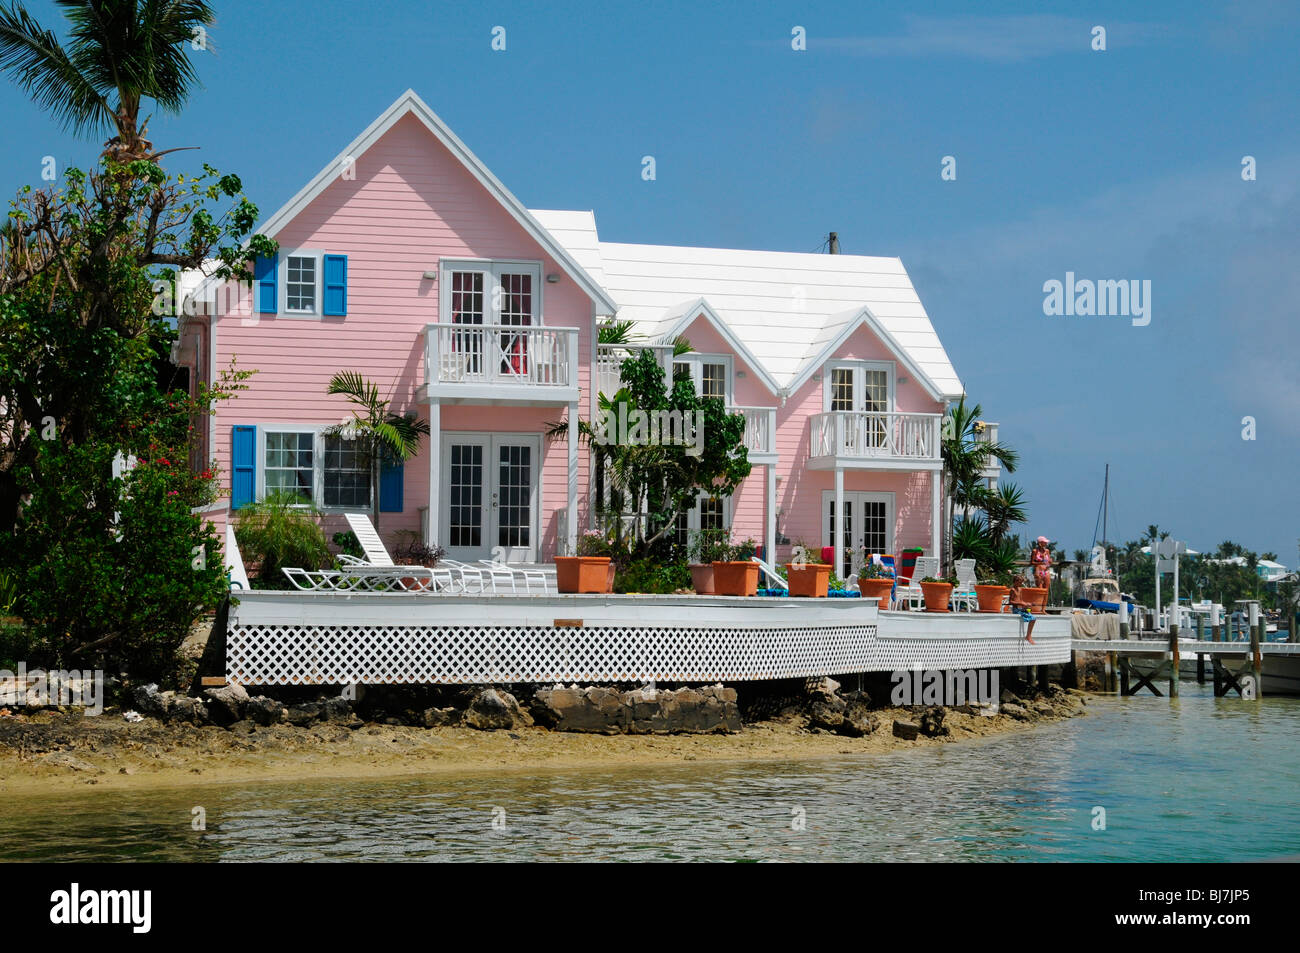 Boy Fishing From Pink Rental Houses At The Entrance To Hope Town Harbour,  Elbow Cay, Abacos, Bahamas